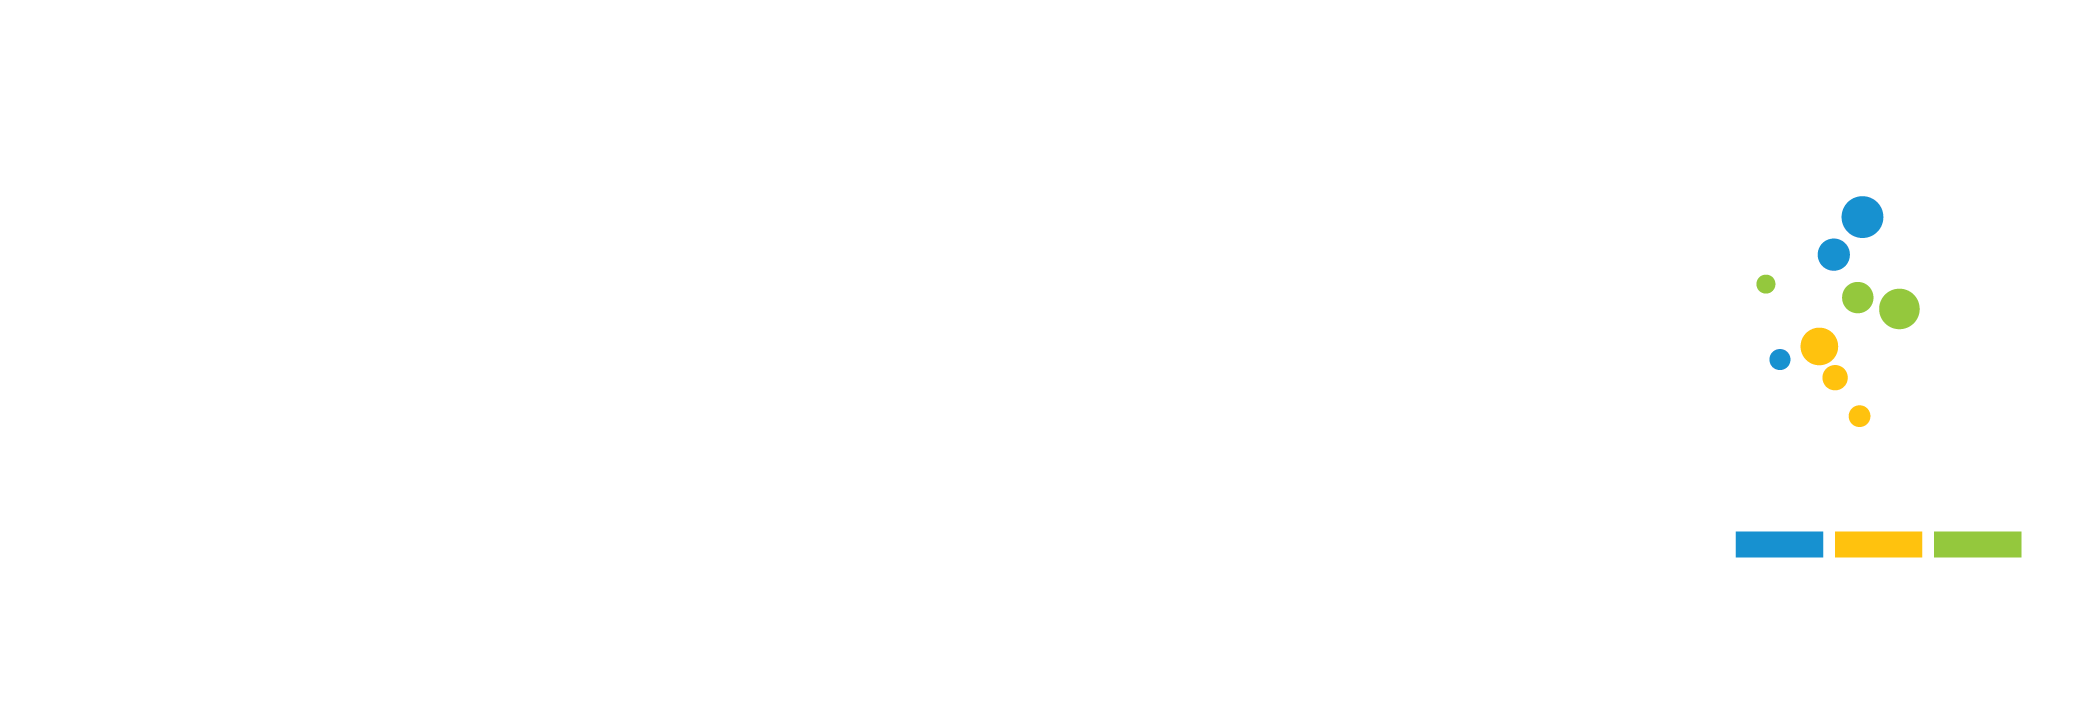 LeanCor Supply Chain Group